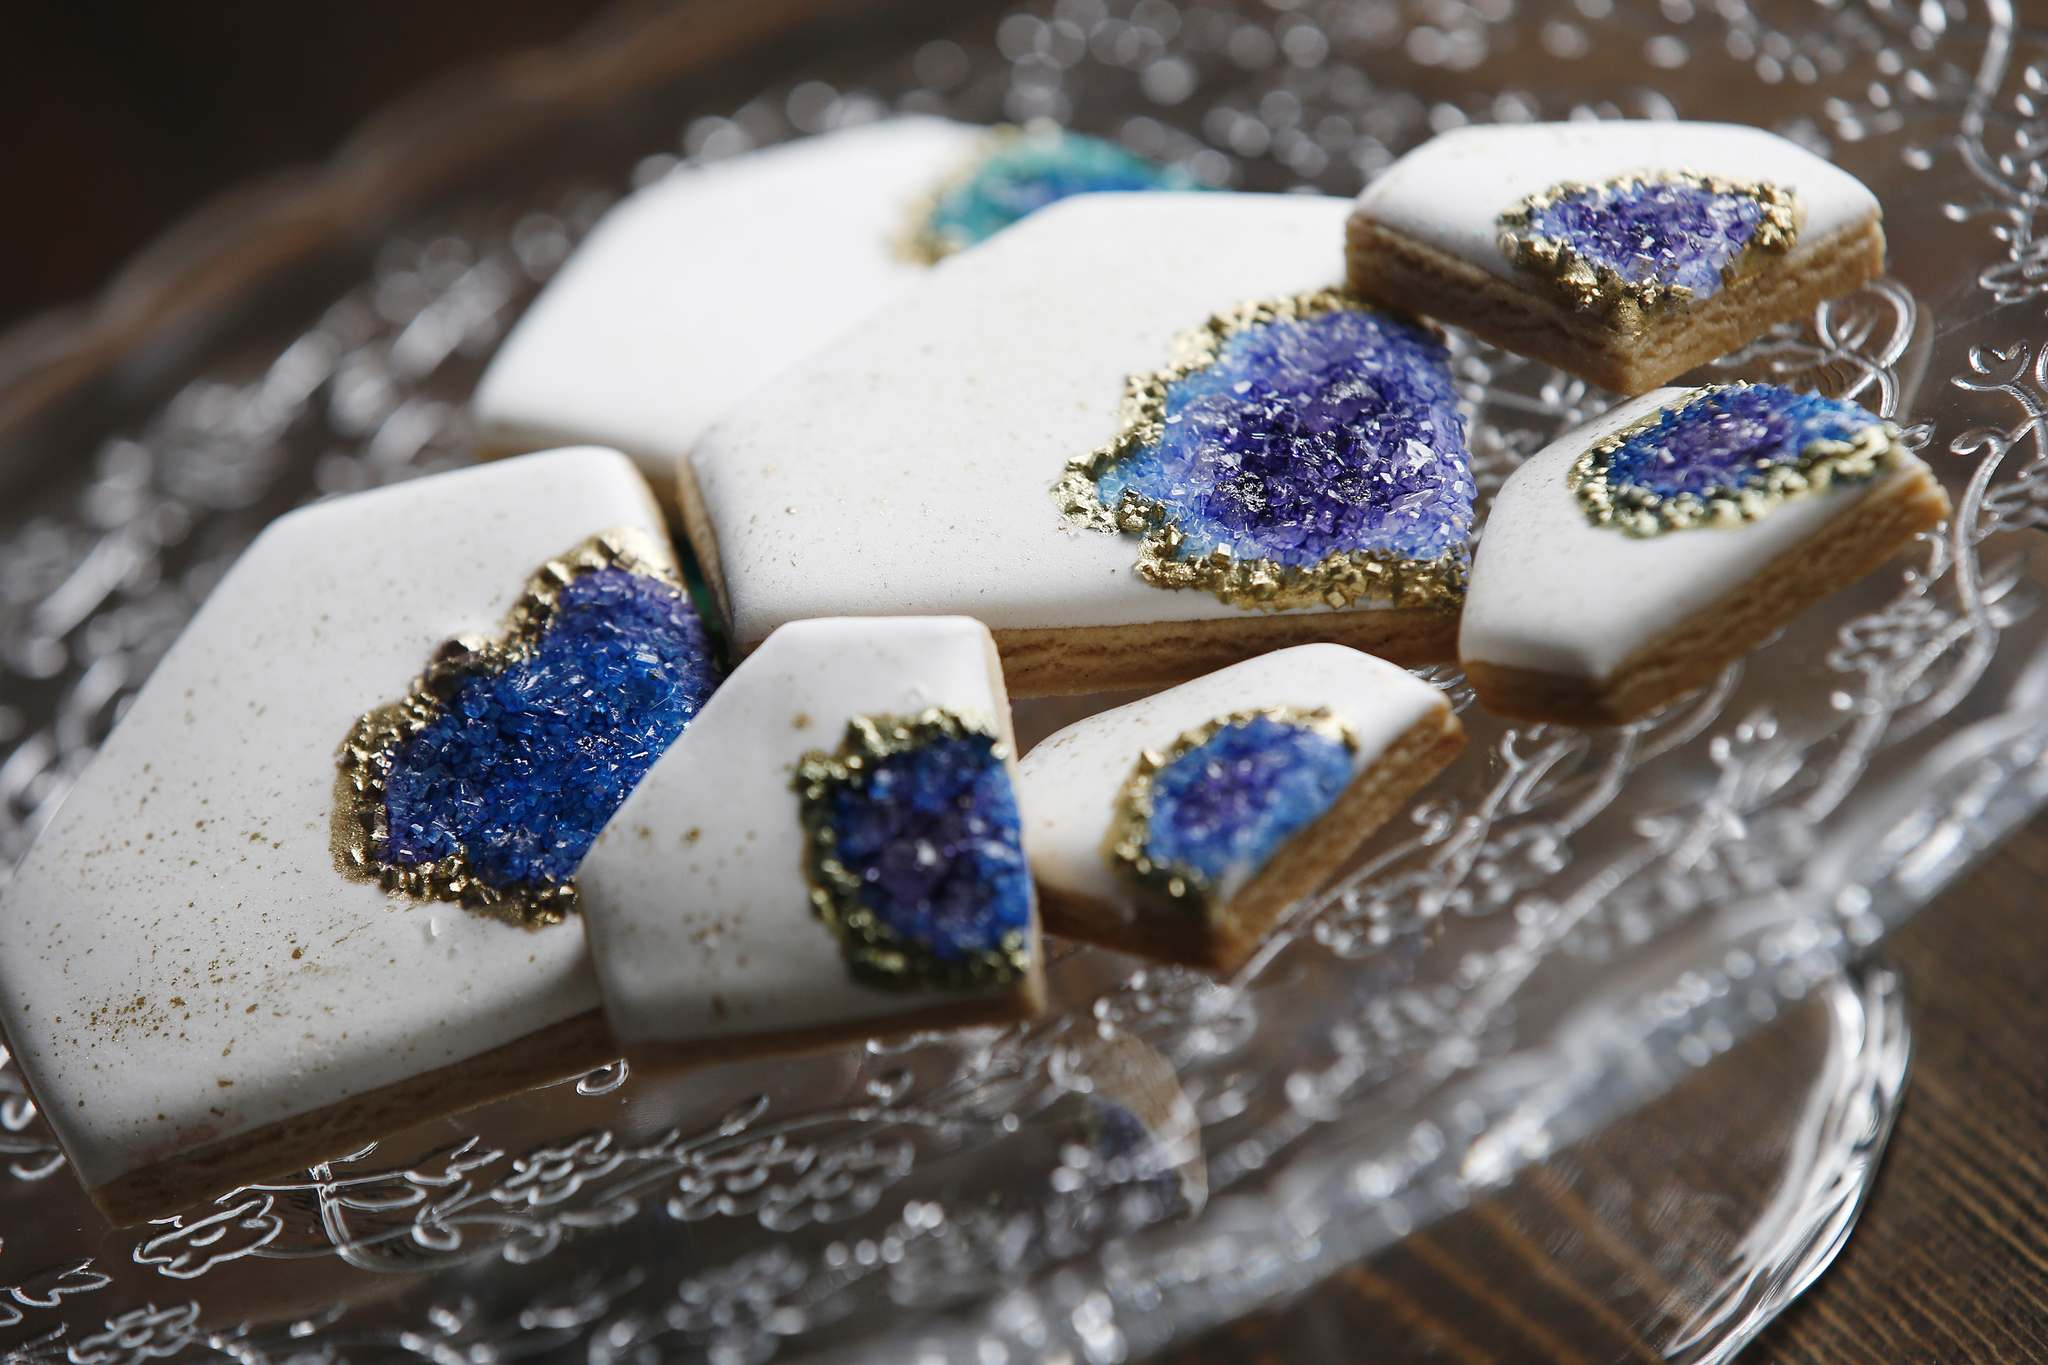 Strauman and Vendivil spent years perfecting their colourful confections.</p>